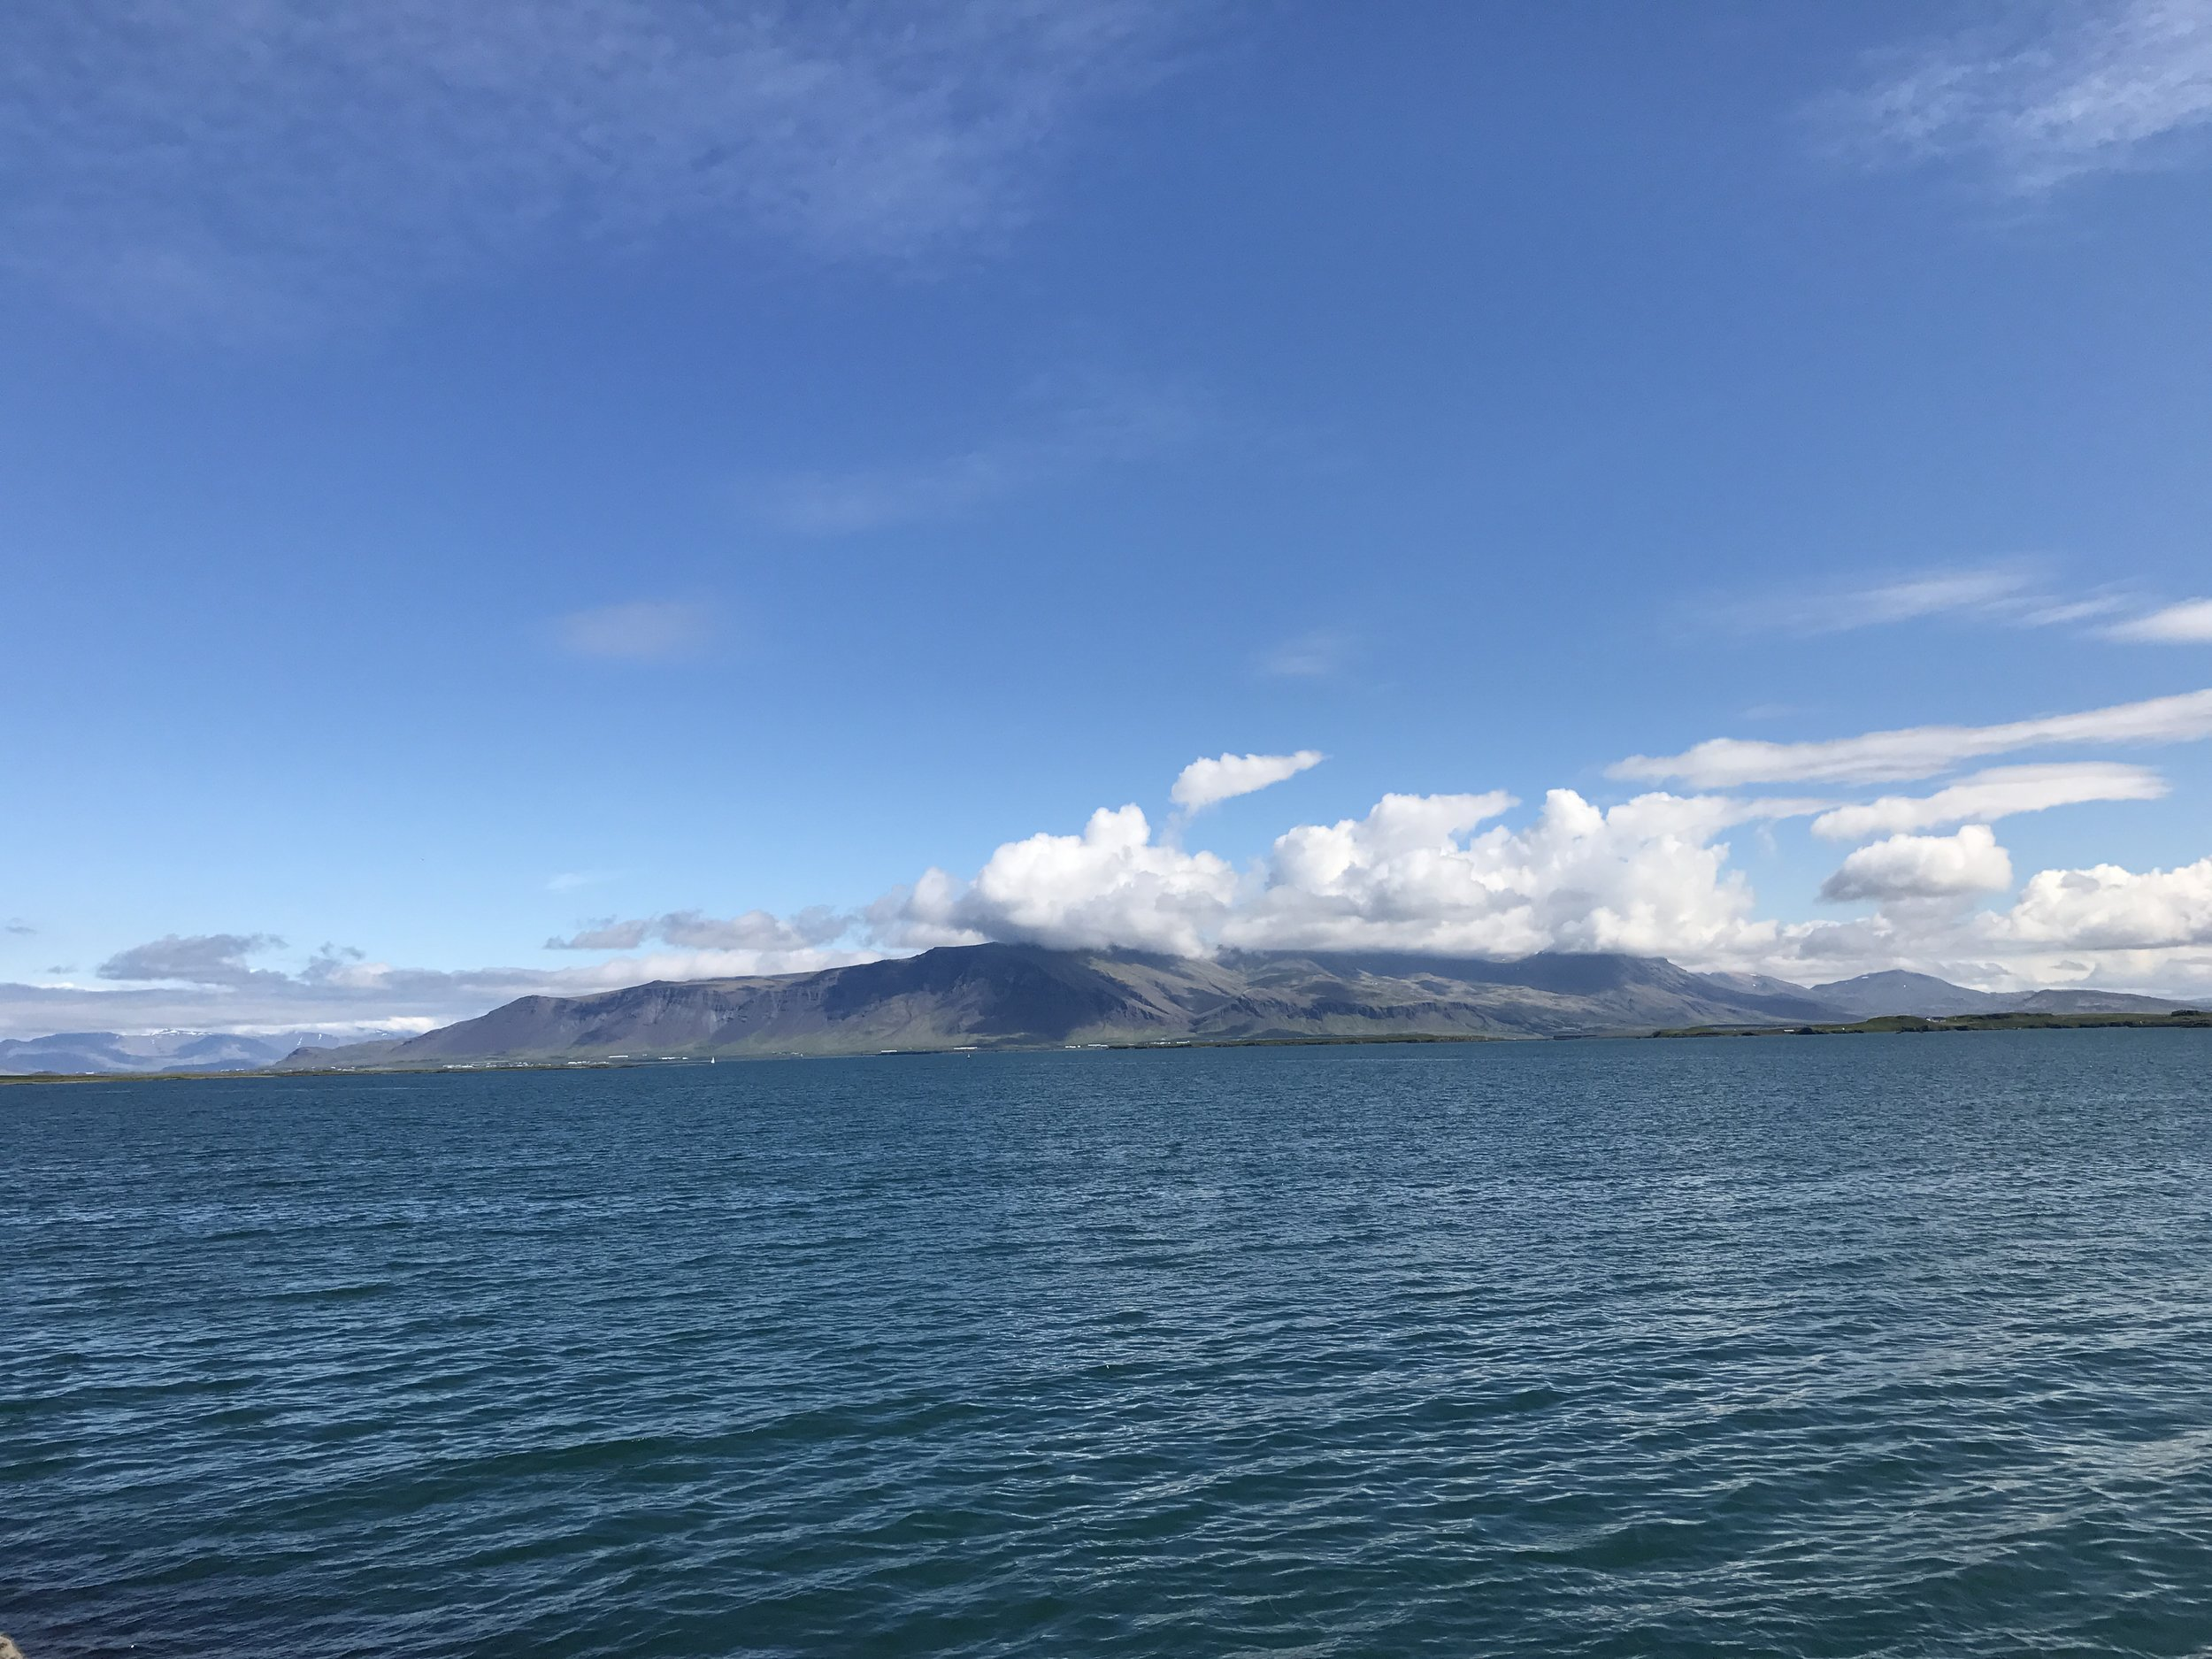 The view from Reykjavik water's edge.